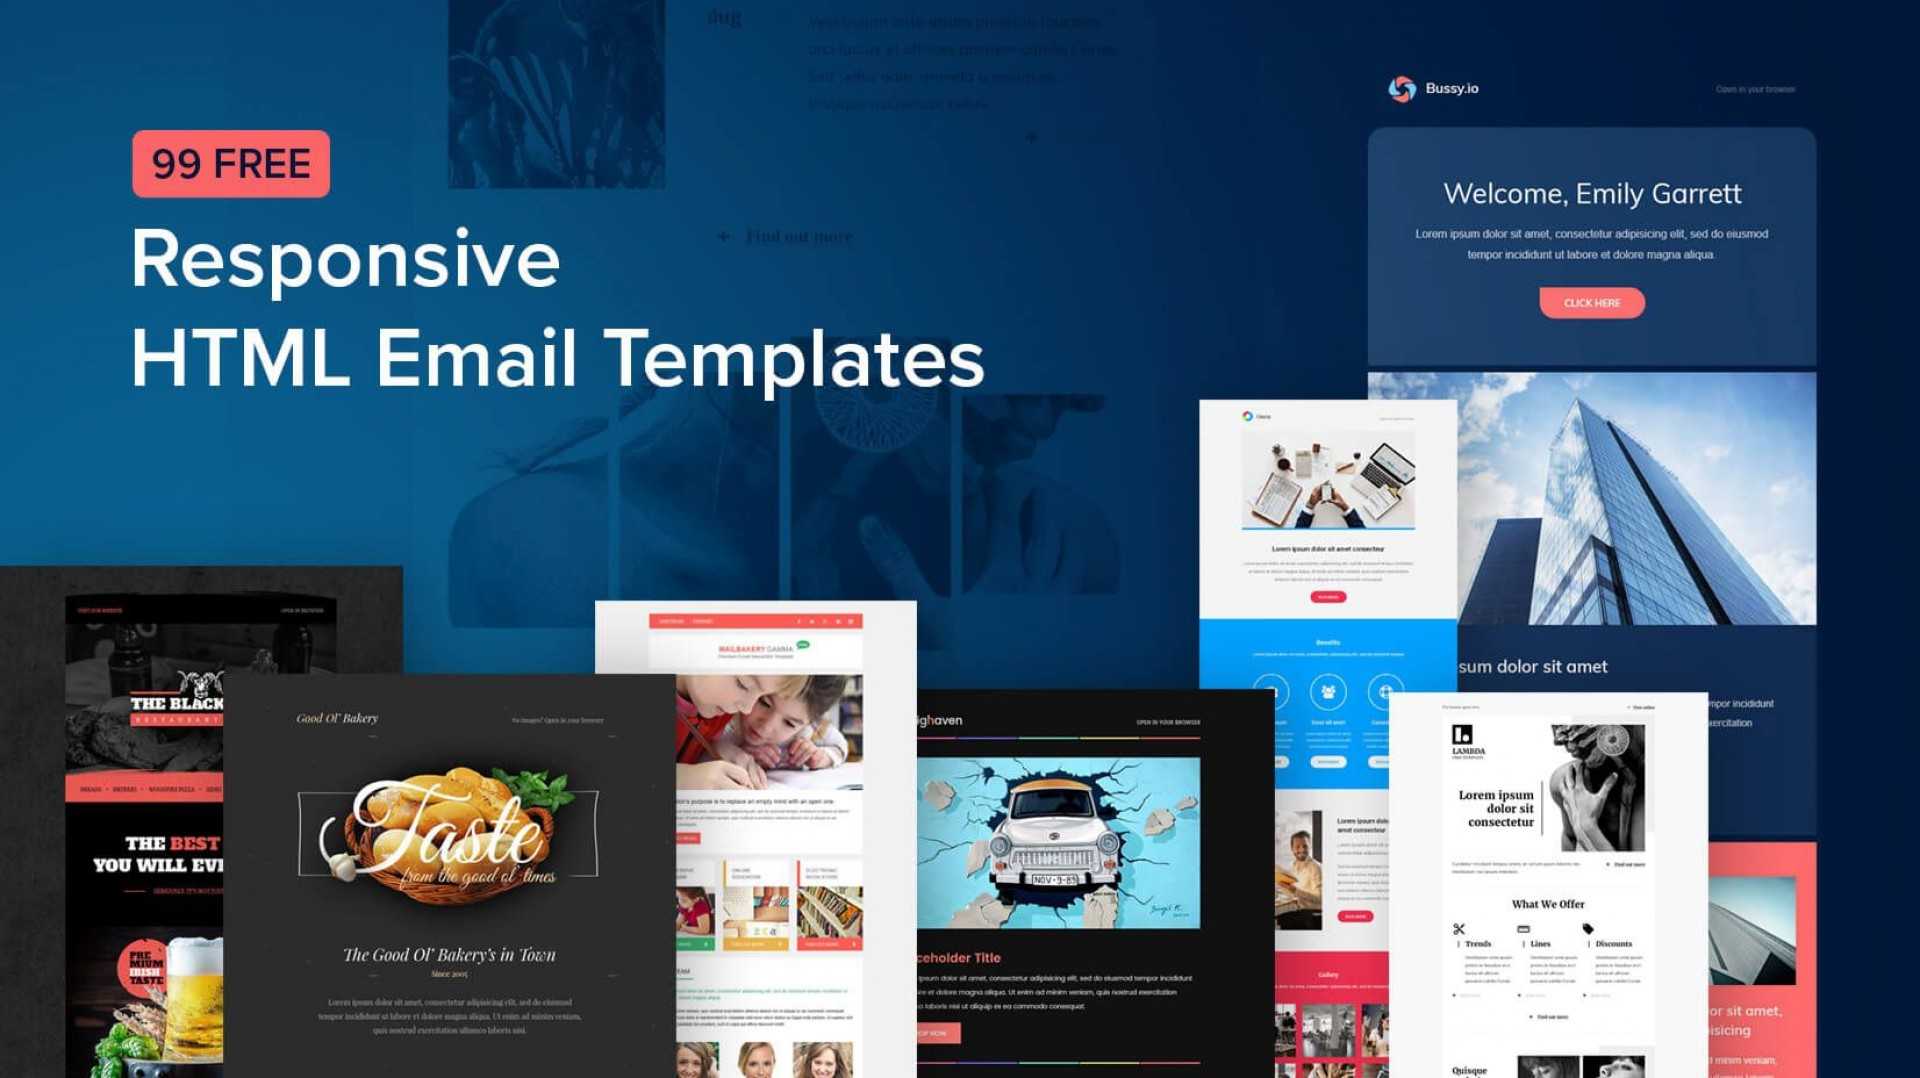 009 Awesome Free Responsive Html Email Template Download Highest Clarity  Simple App-responsive-notification-email-html-template1920